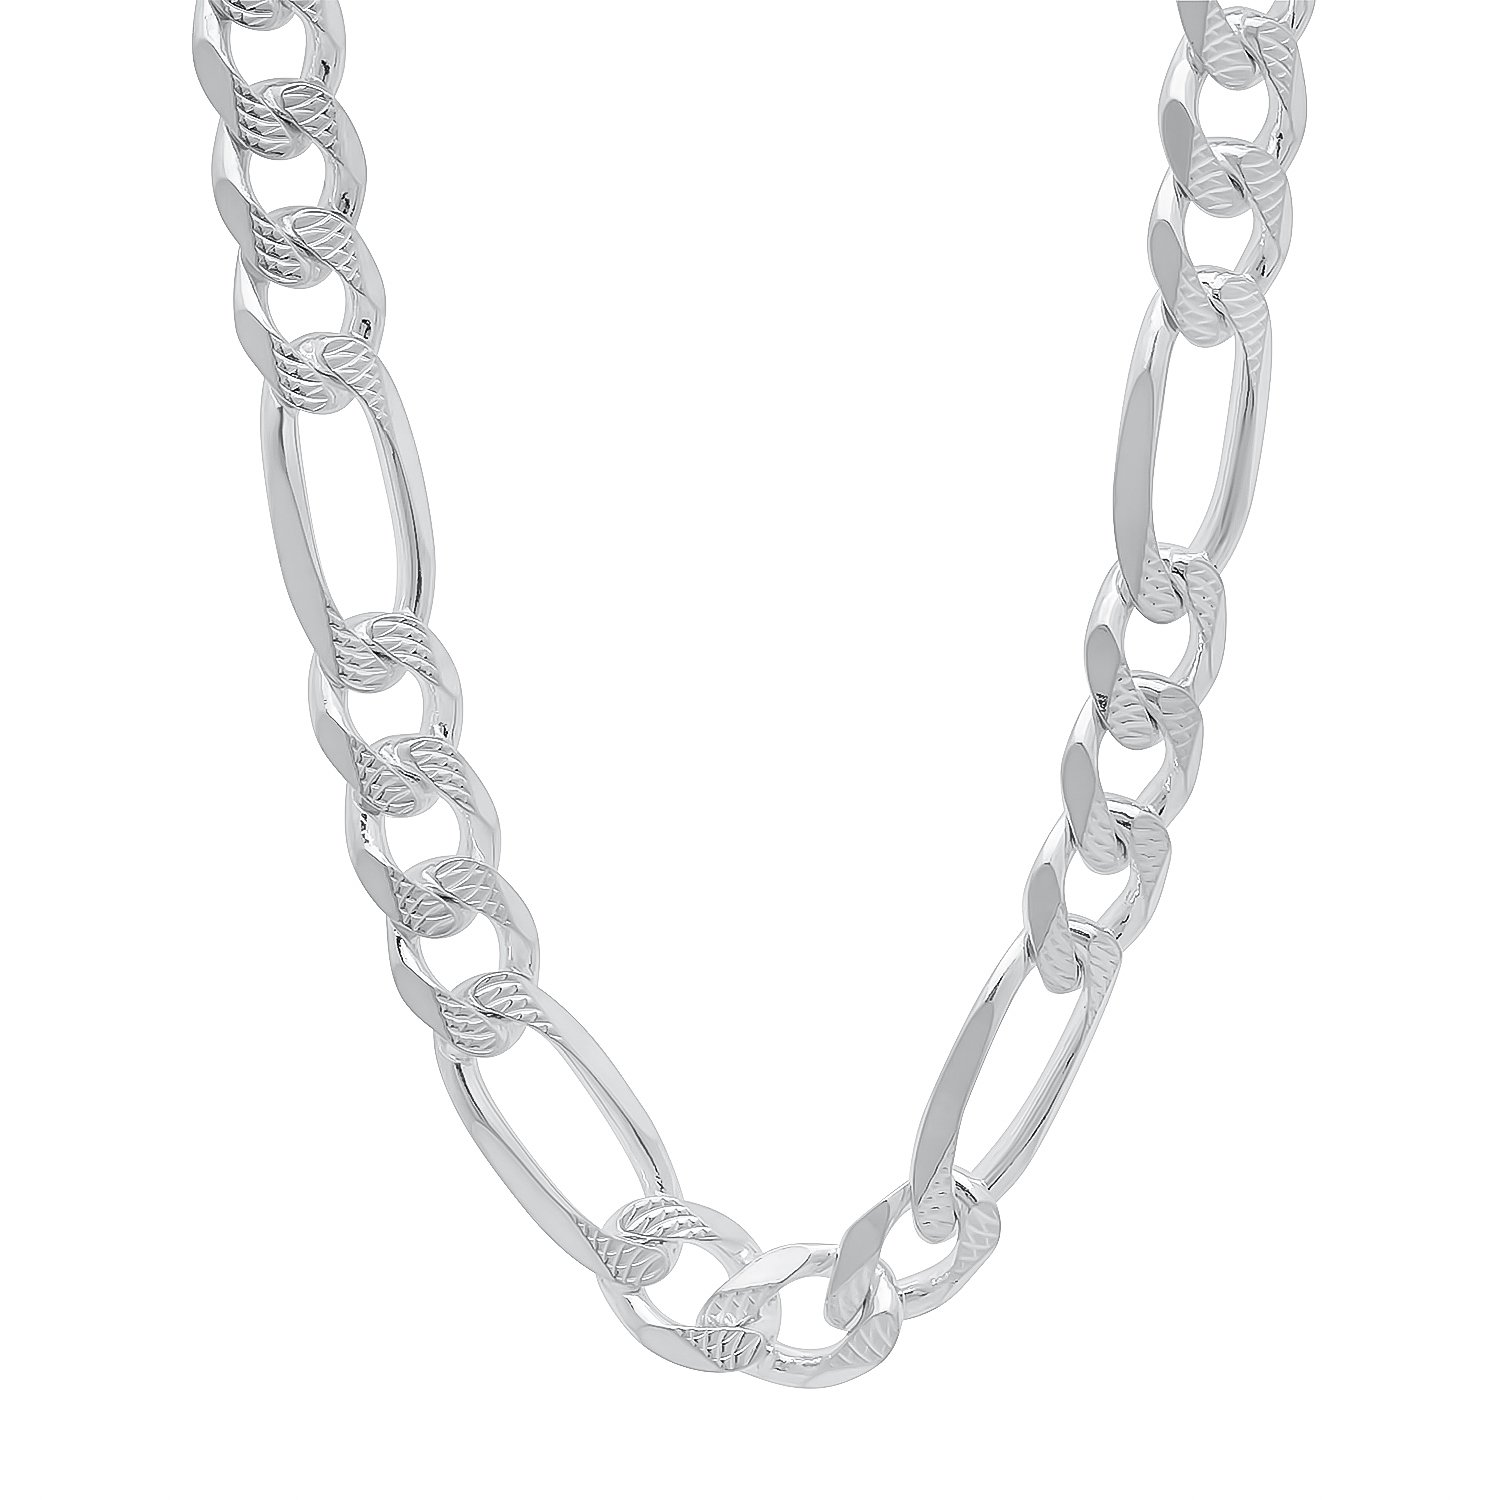 9.5mm 925 Sterling Silver Nickel-Free Diamond-Cut Figaro Link Italian Chain, 26'' + Cleaning Cloth